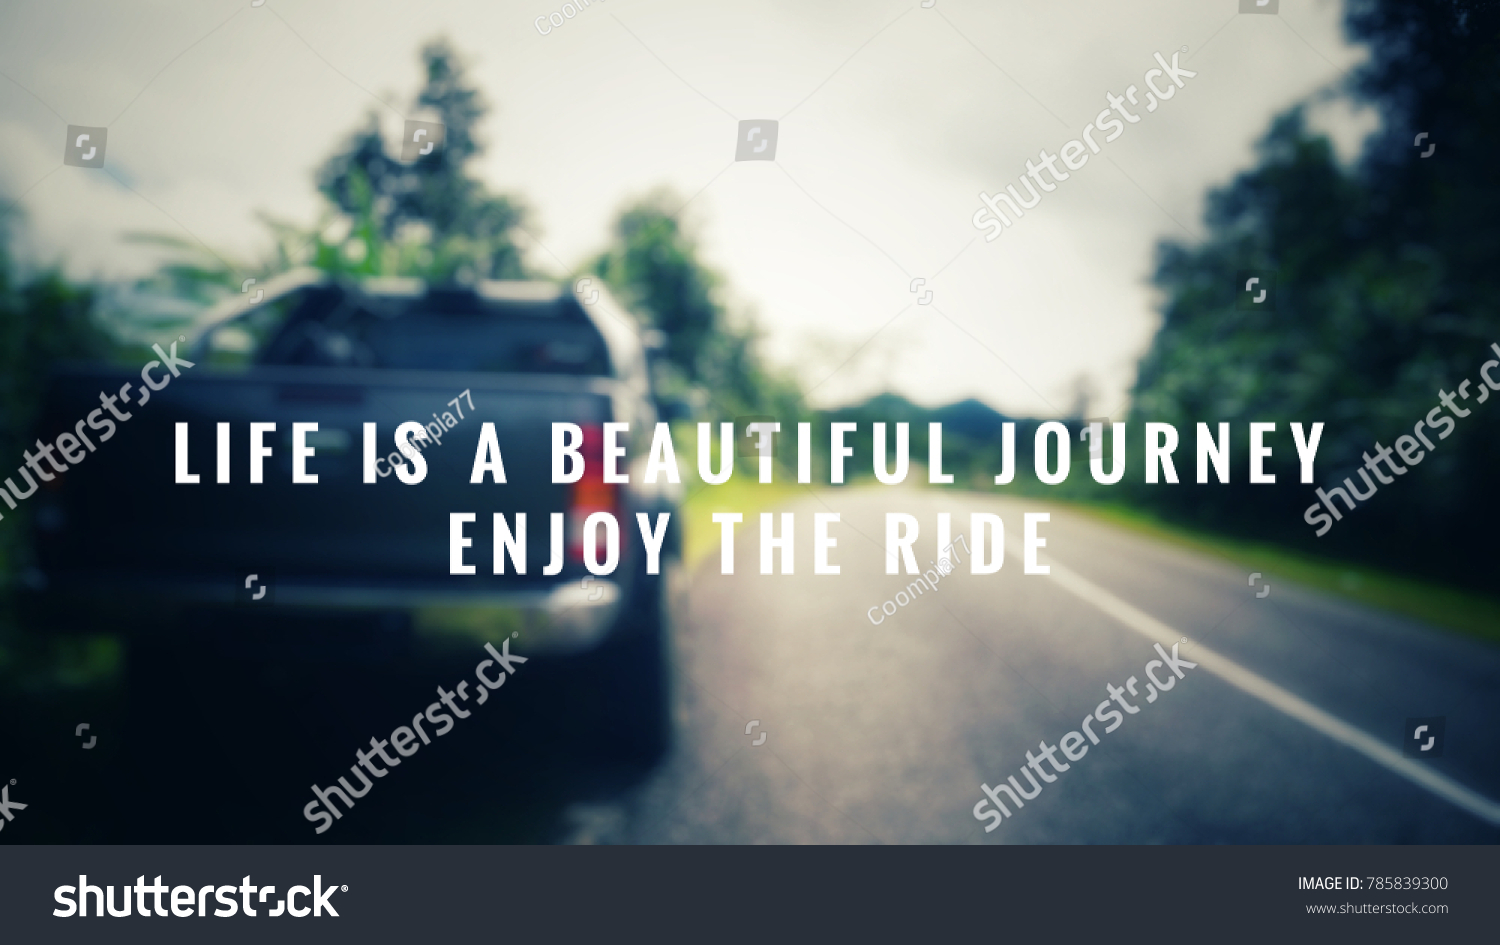 Quotes Life Journey Motivational Inspirational Quotes Life Beautiful Journey Stock